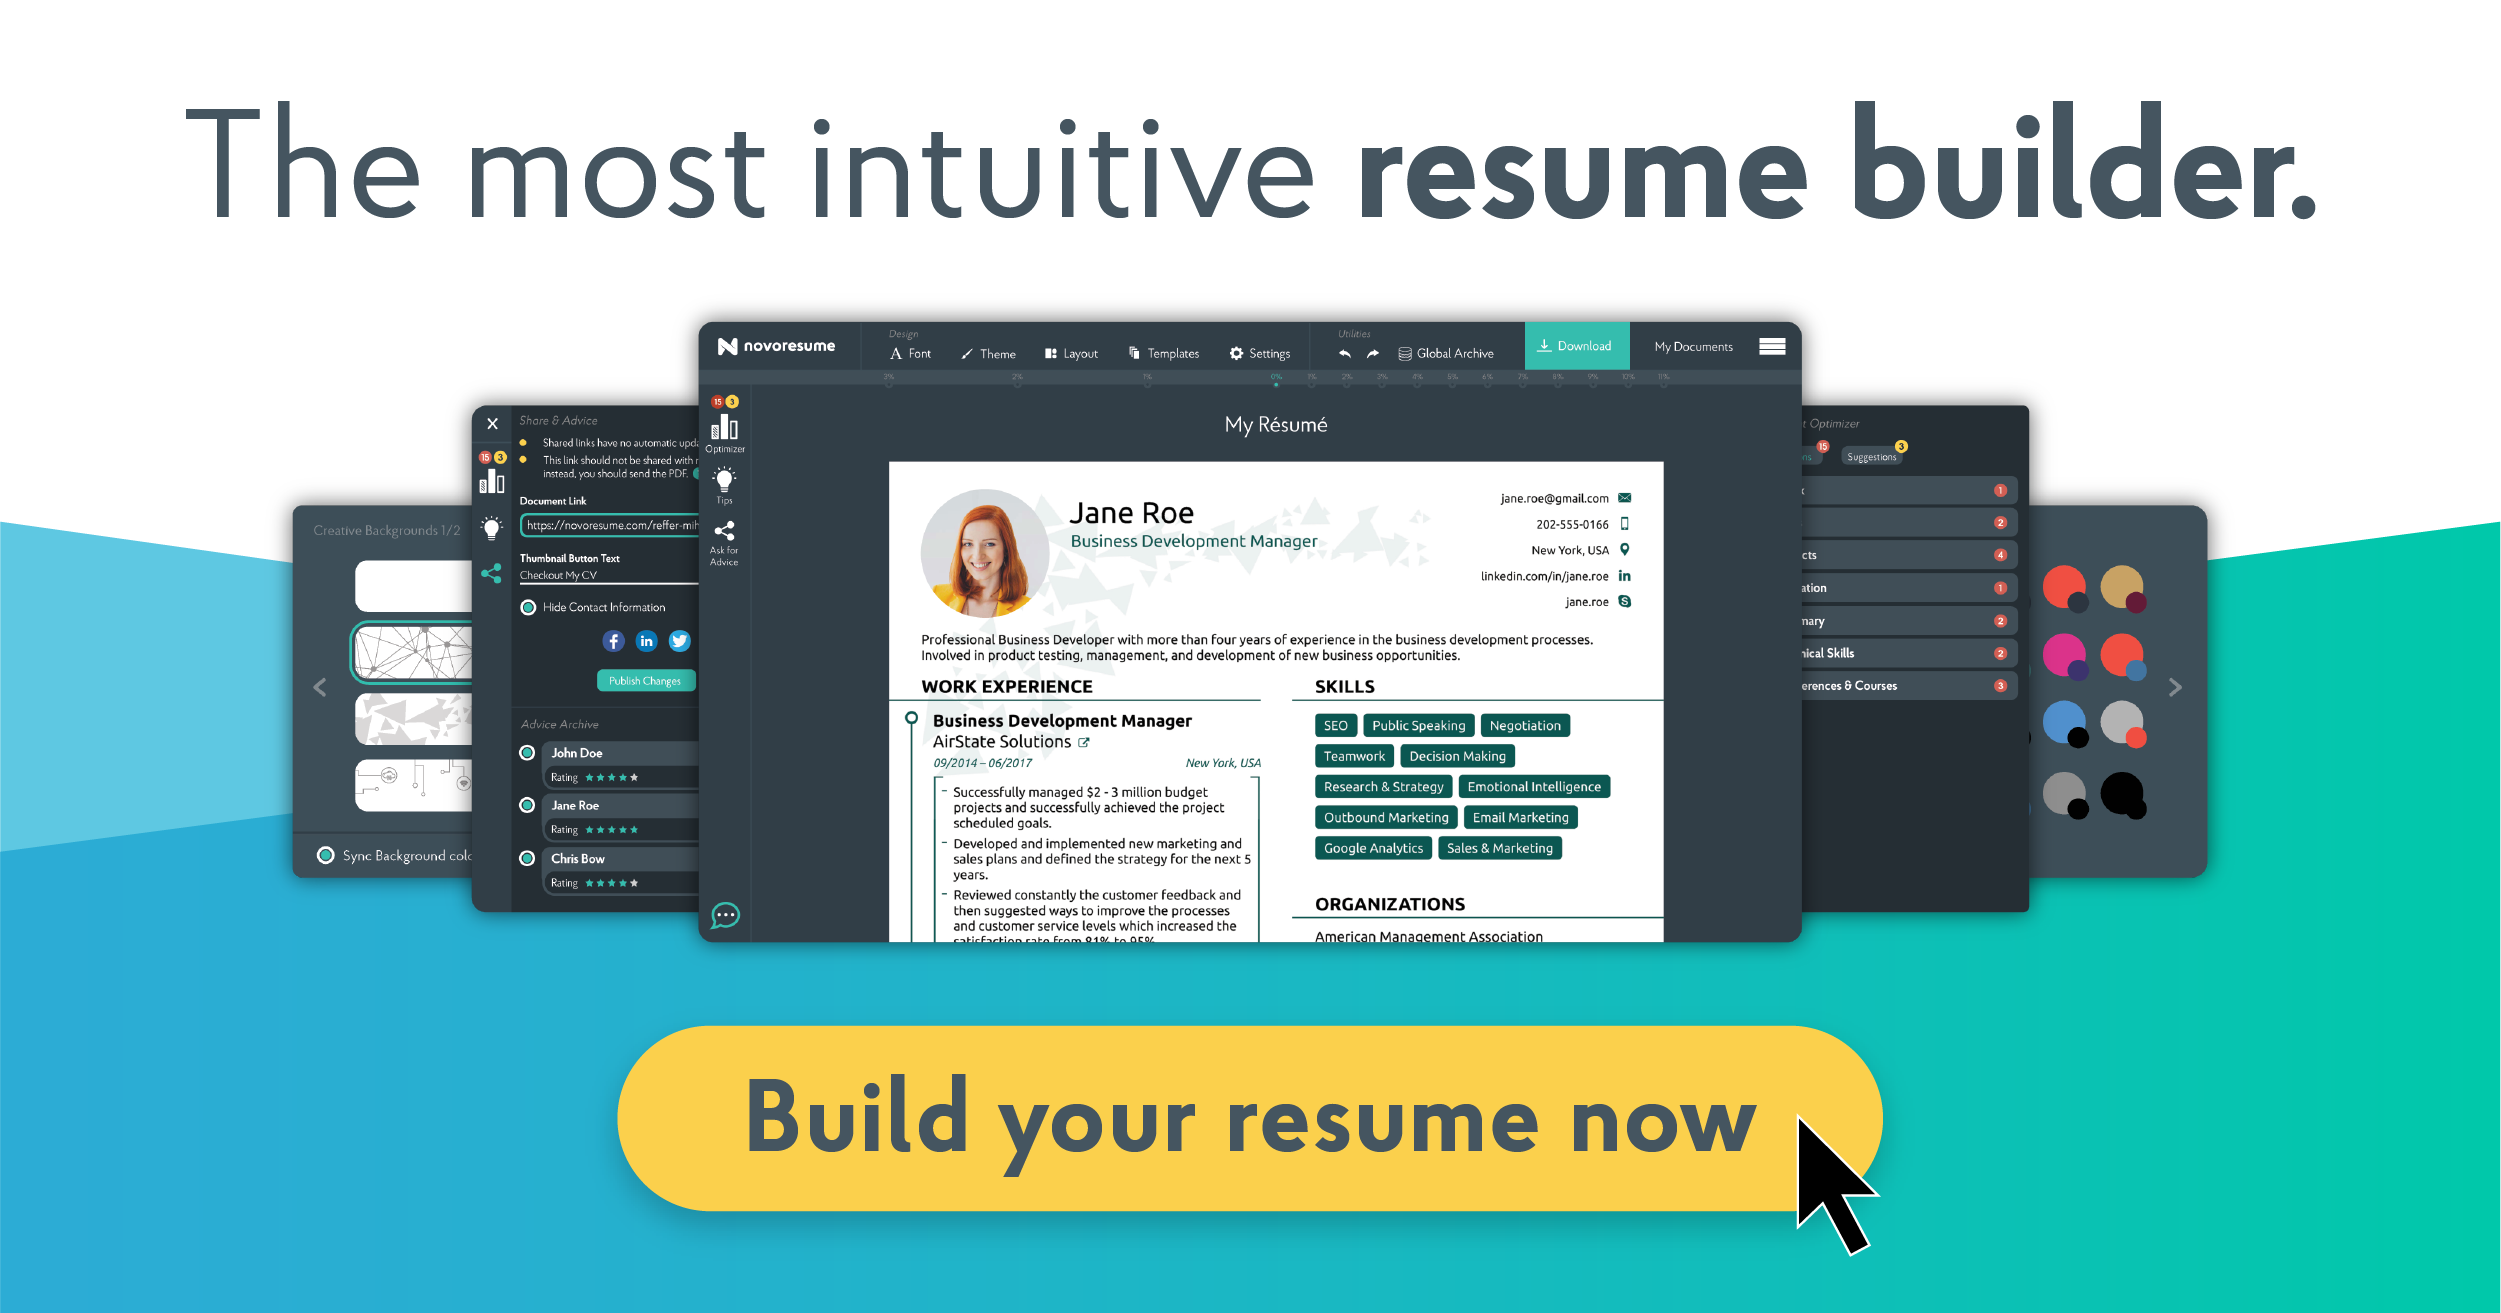 Make a perfect resume in 2019 and get your dream job using